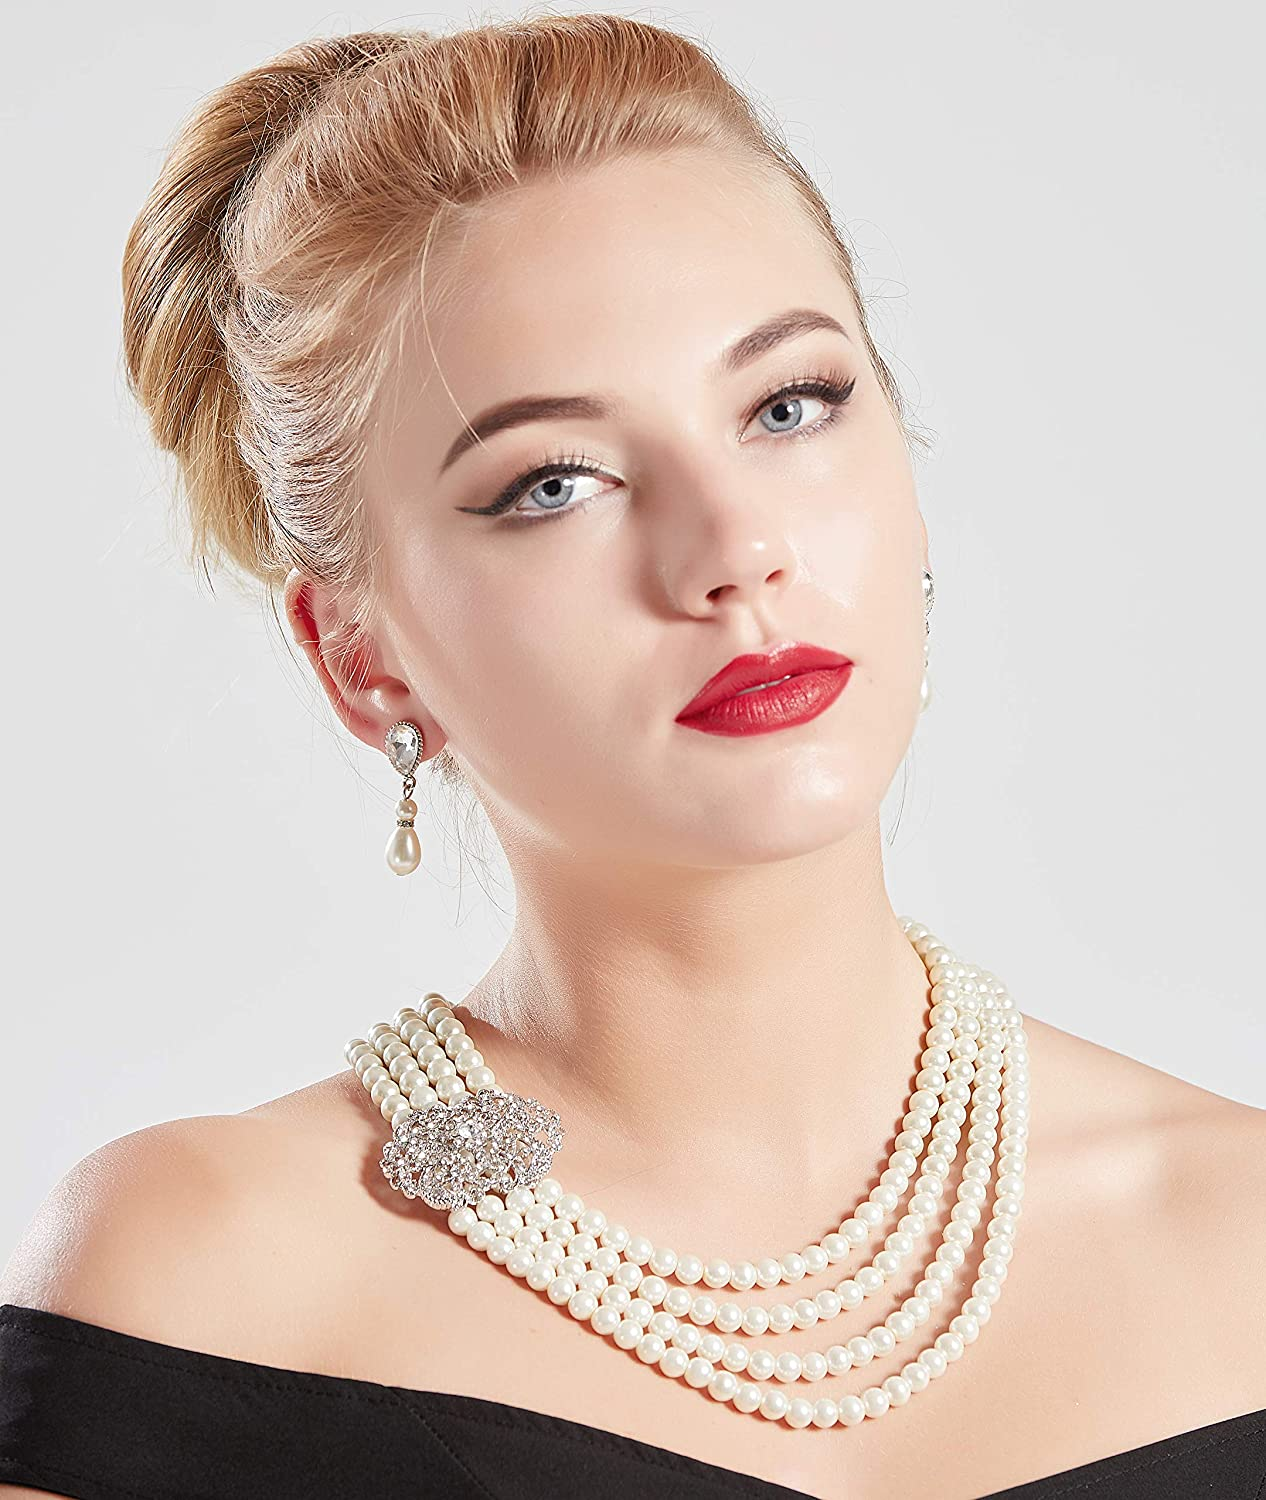 1920s Accessories | Great Gatsby Accessories Guide BABEYOND 1920s Gatsby Pearl Necklace Vintage Bridal Pearl Necklace Earrings Jewelry Set Multilayer Imitation Pearl Necklace with Brooch $19.99 AT vintagedancer.com